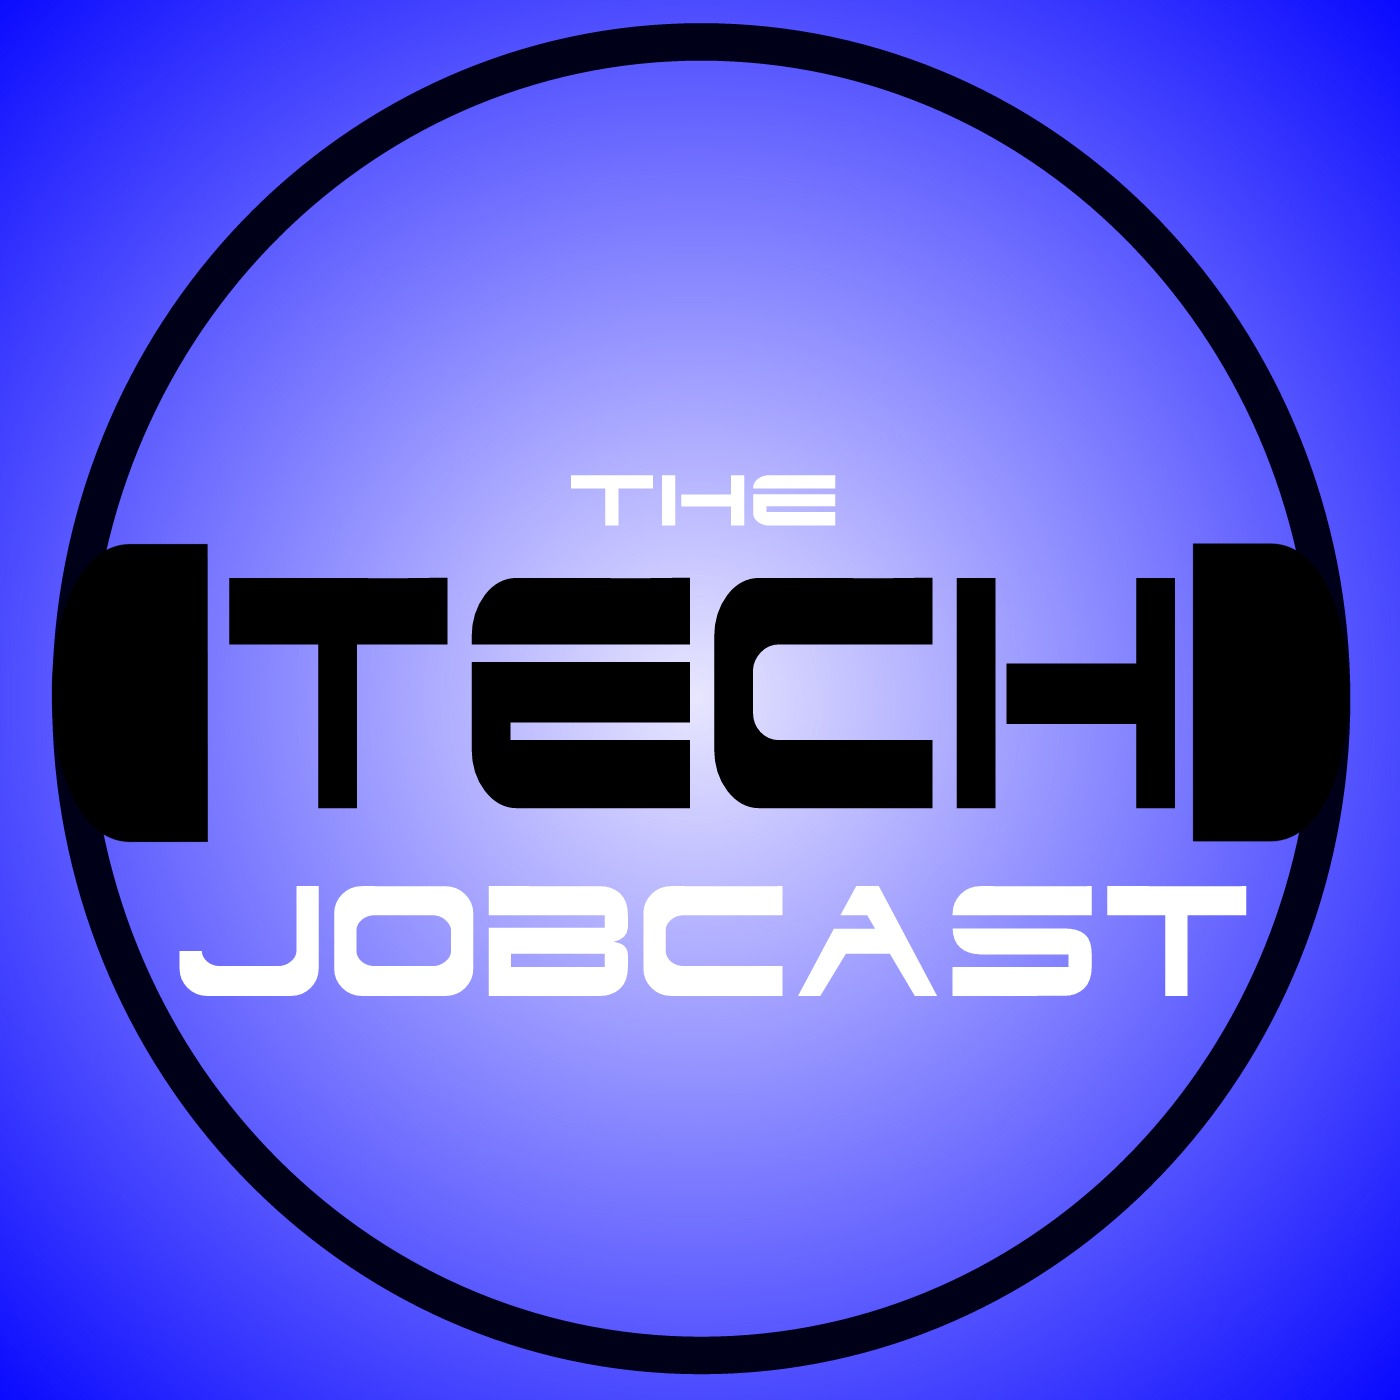 IT Job listings for the week of March 25, 2018